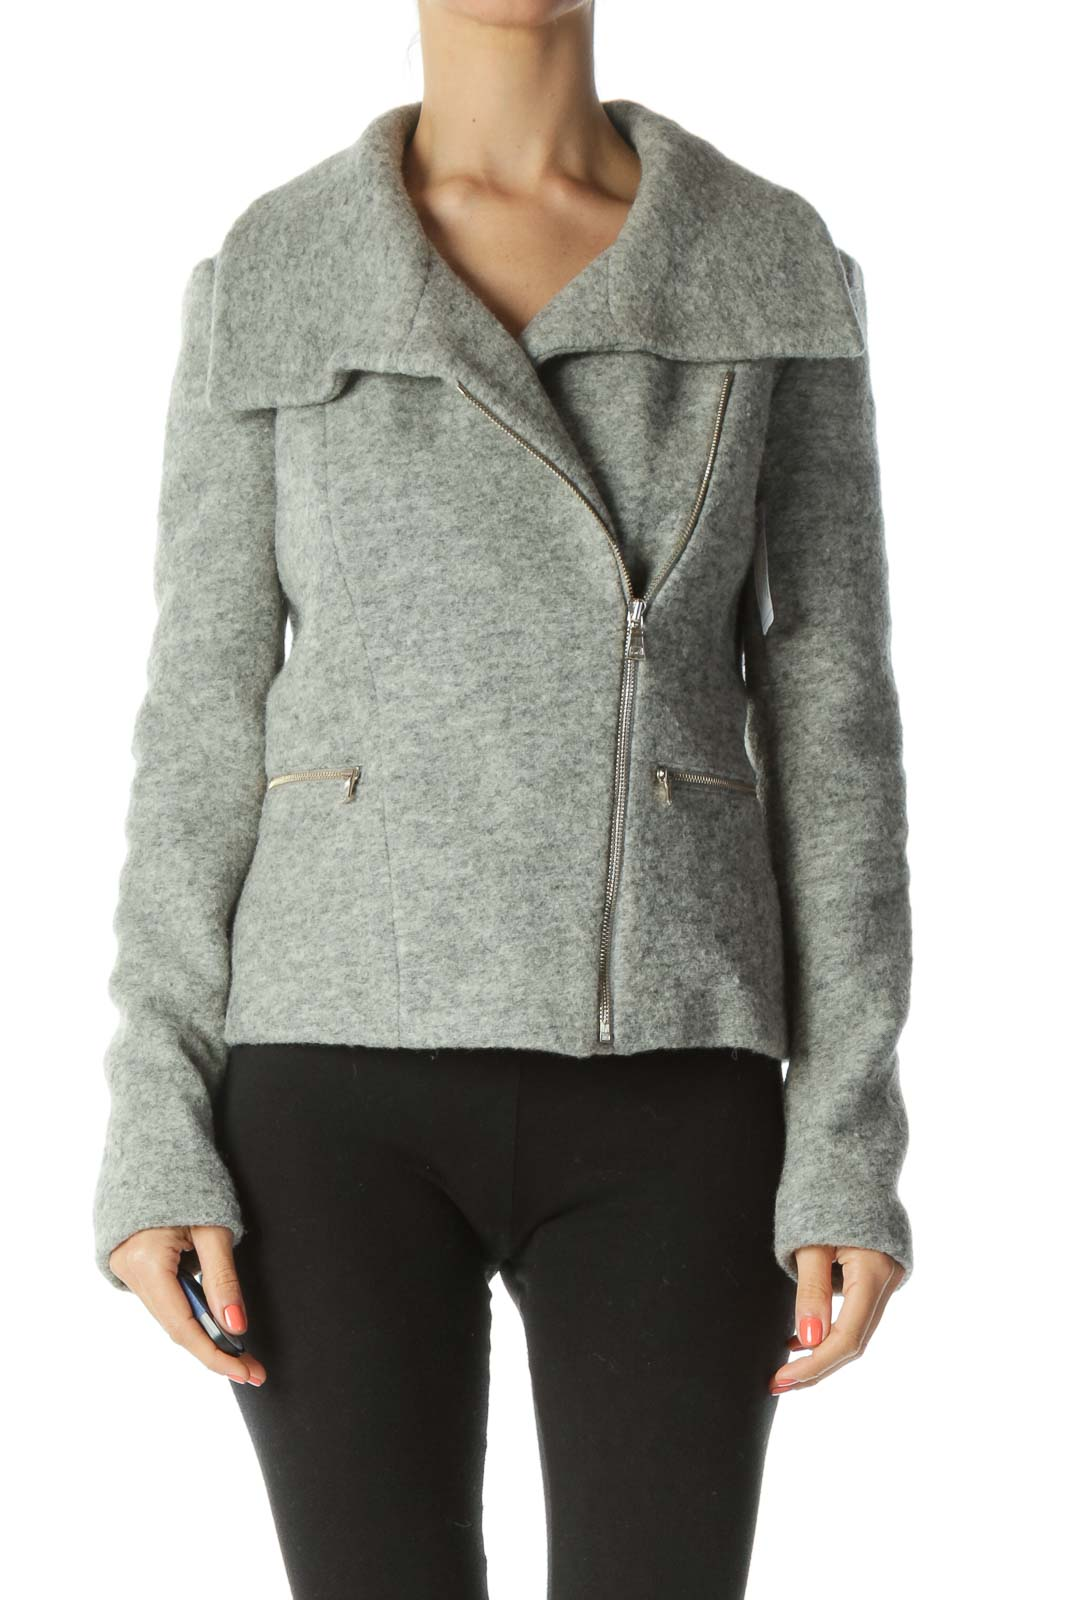 Gray Collared Zippered Tweed Fitted Jacket